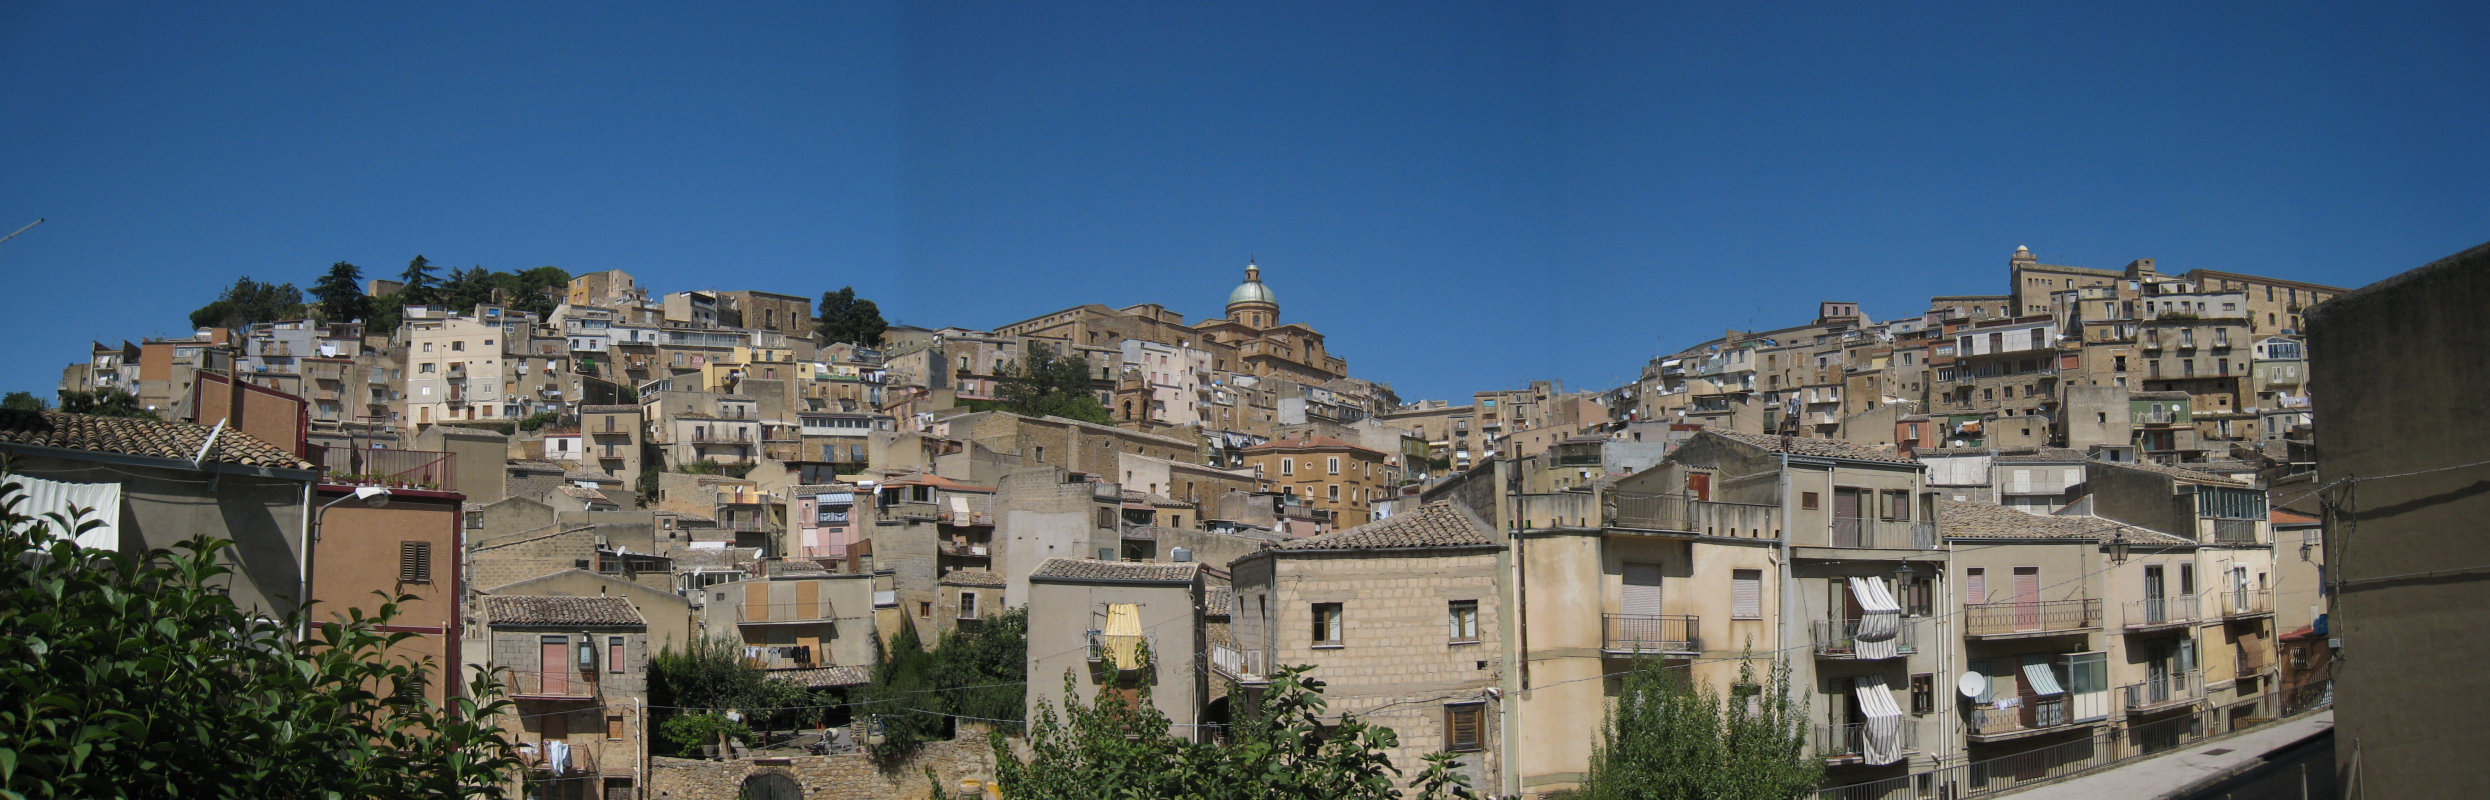 http://www.thbz.org/images/europe/sicile/piazza-armerina-panoramique.jpg